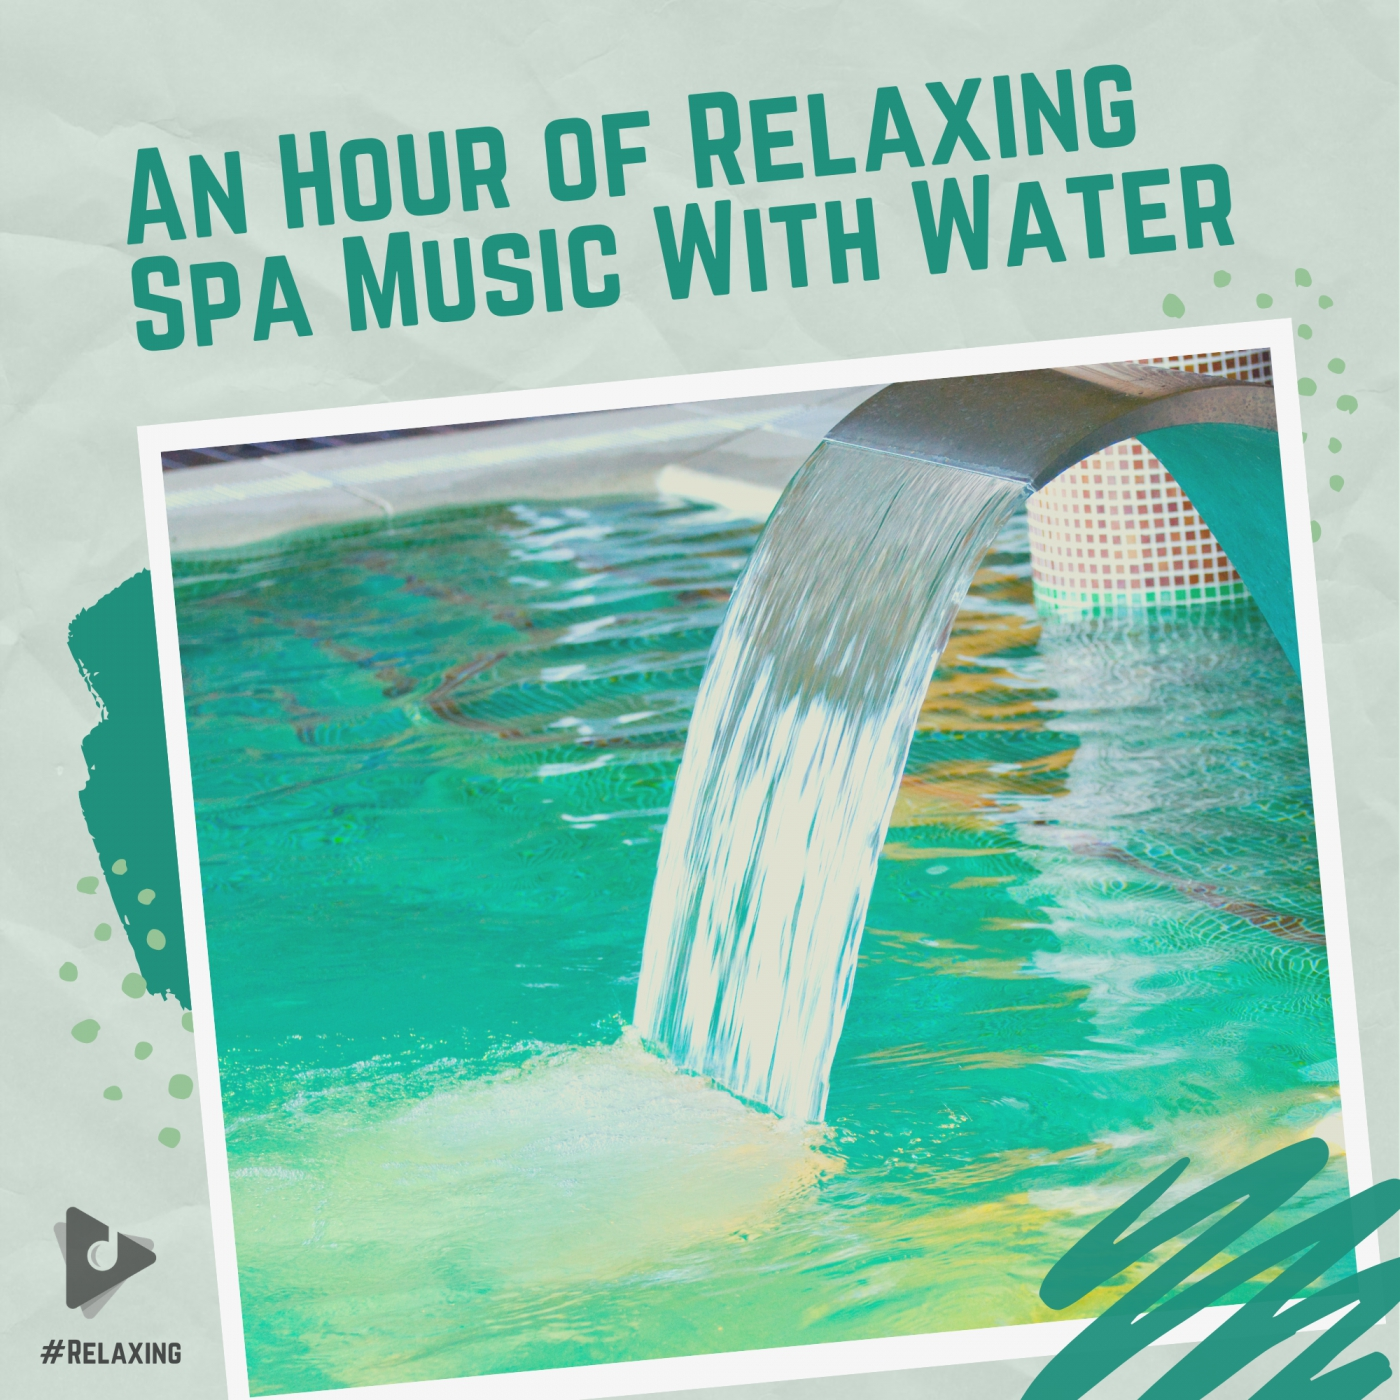 An Hour of Relaxing Spa Music With Water